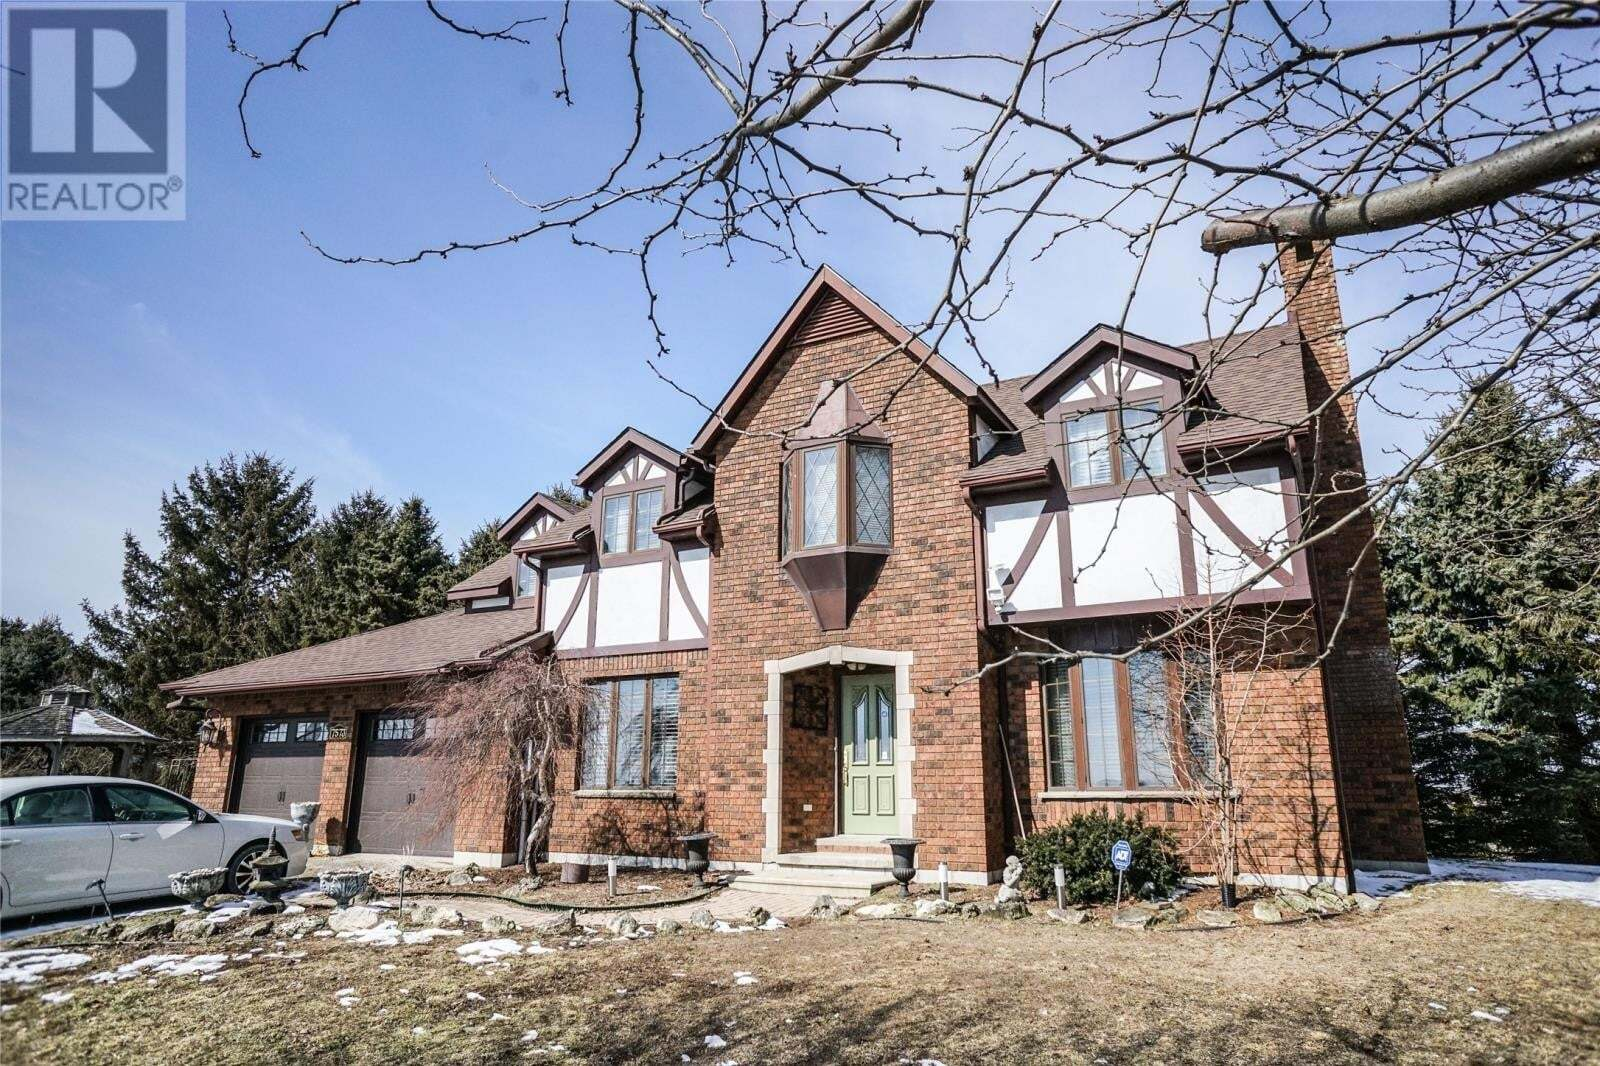 House for sale at 7573 Belle Rose Line Chatham-kent Ontario - MLS: 20005024